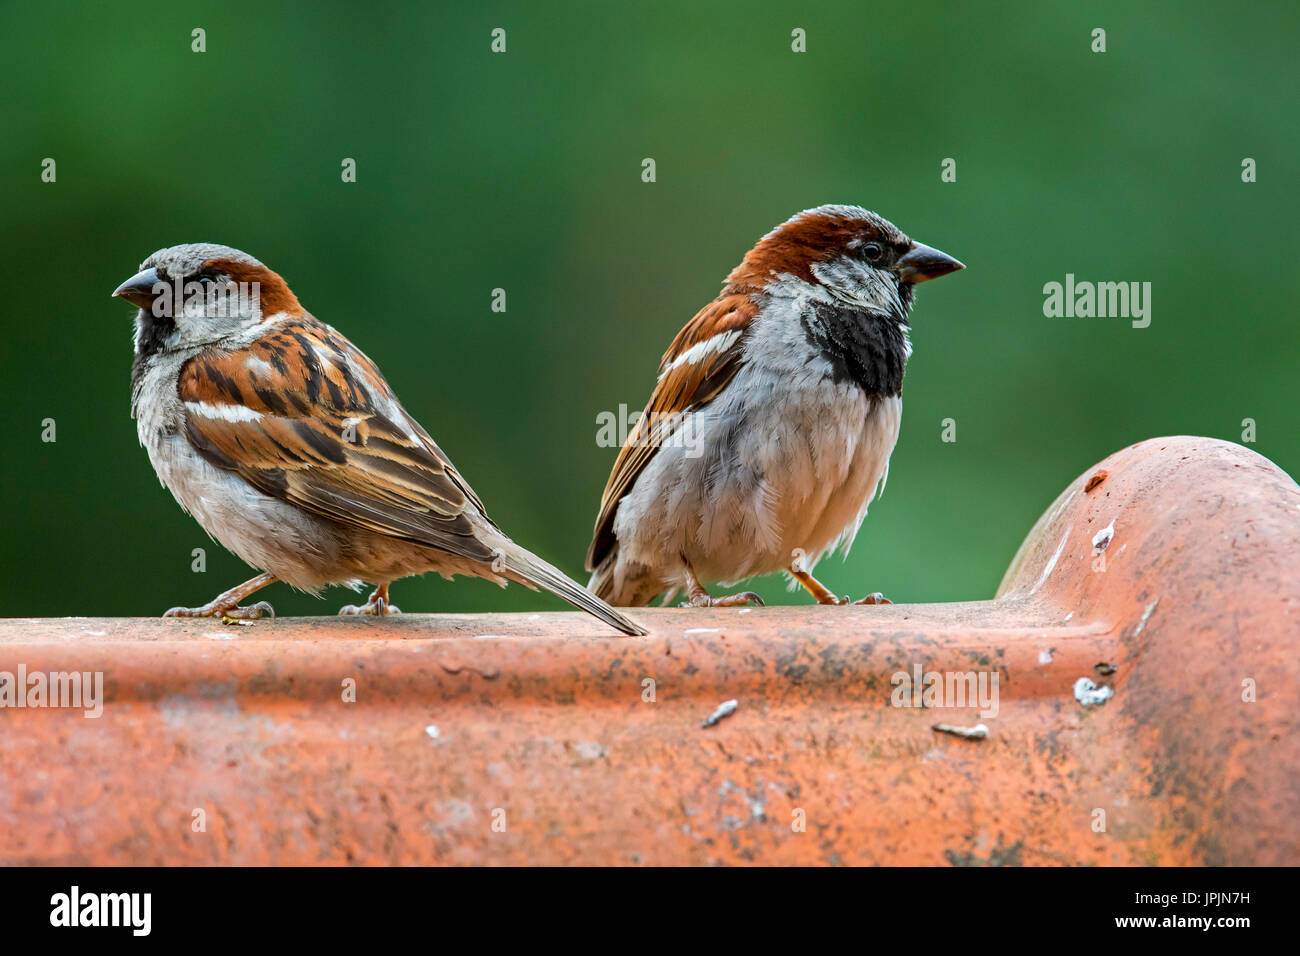 two-male-house-sparrows-passer-domesticus-perched-on-ridge-tile-on-JPJN7H.jpg